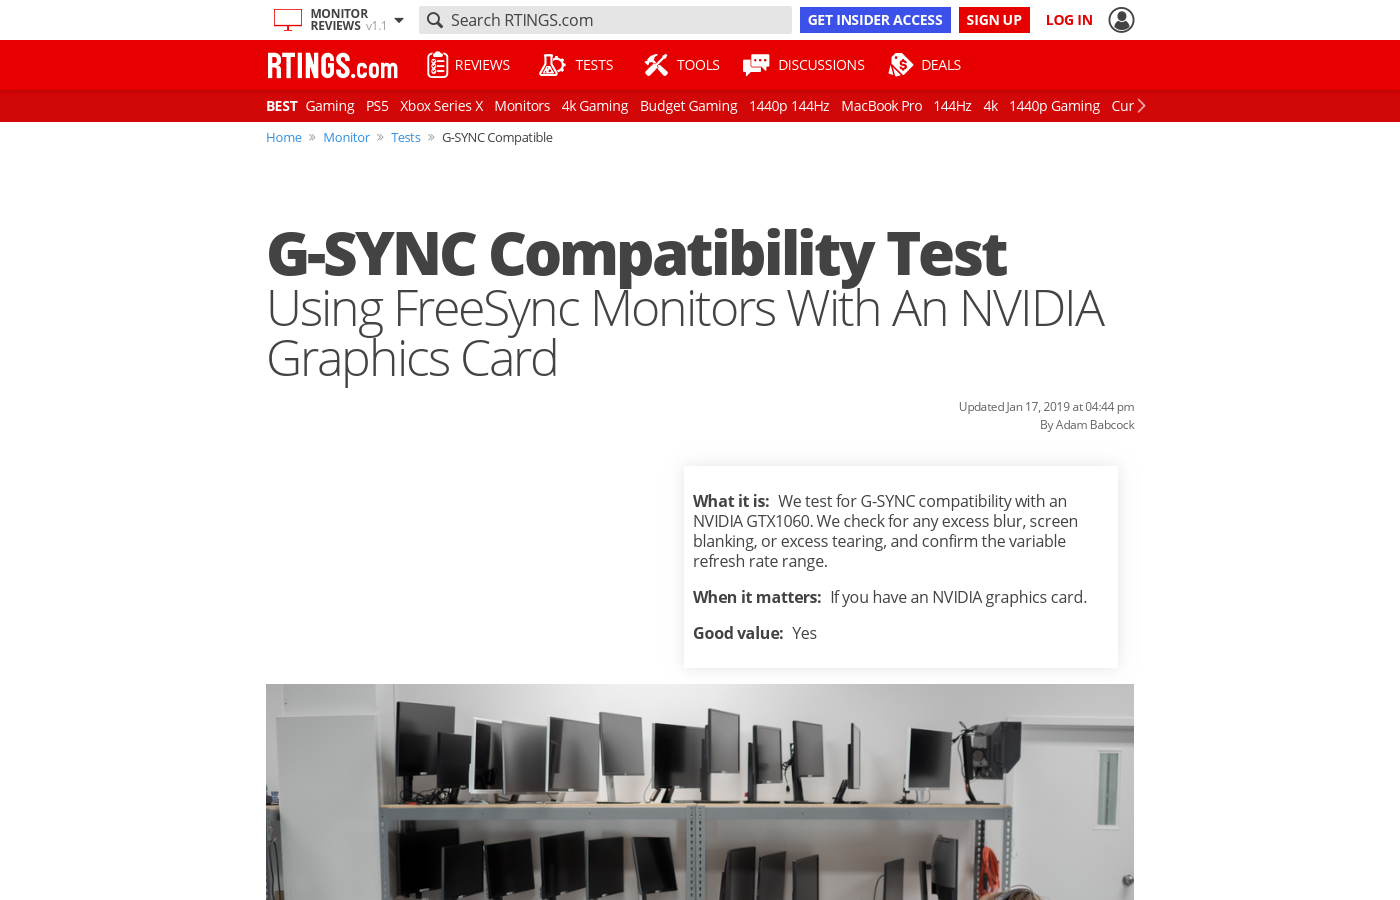 G-SYNC Compatibility Test: Using FreeSync Monitors With An NVIDIA Graphics Card